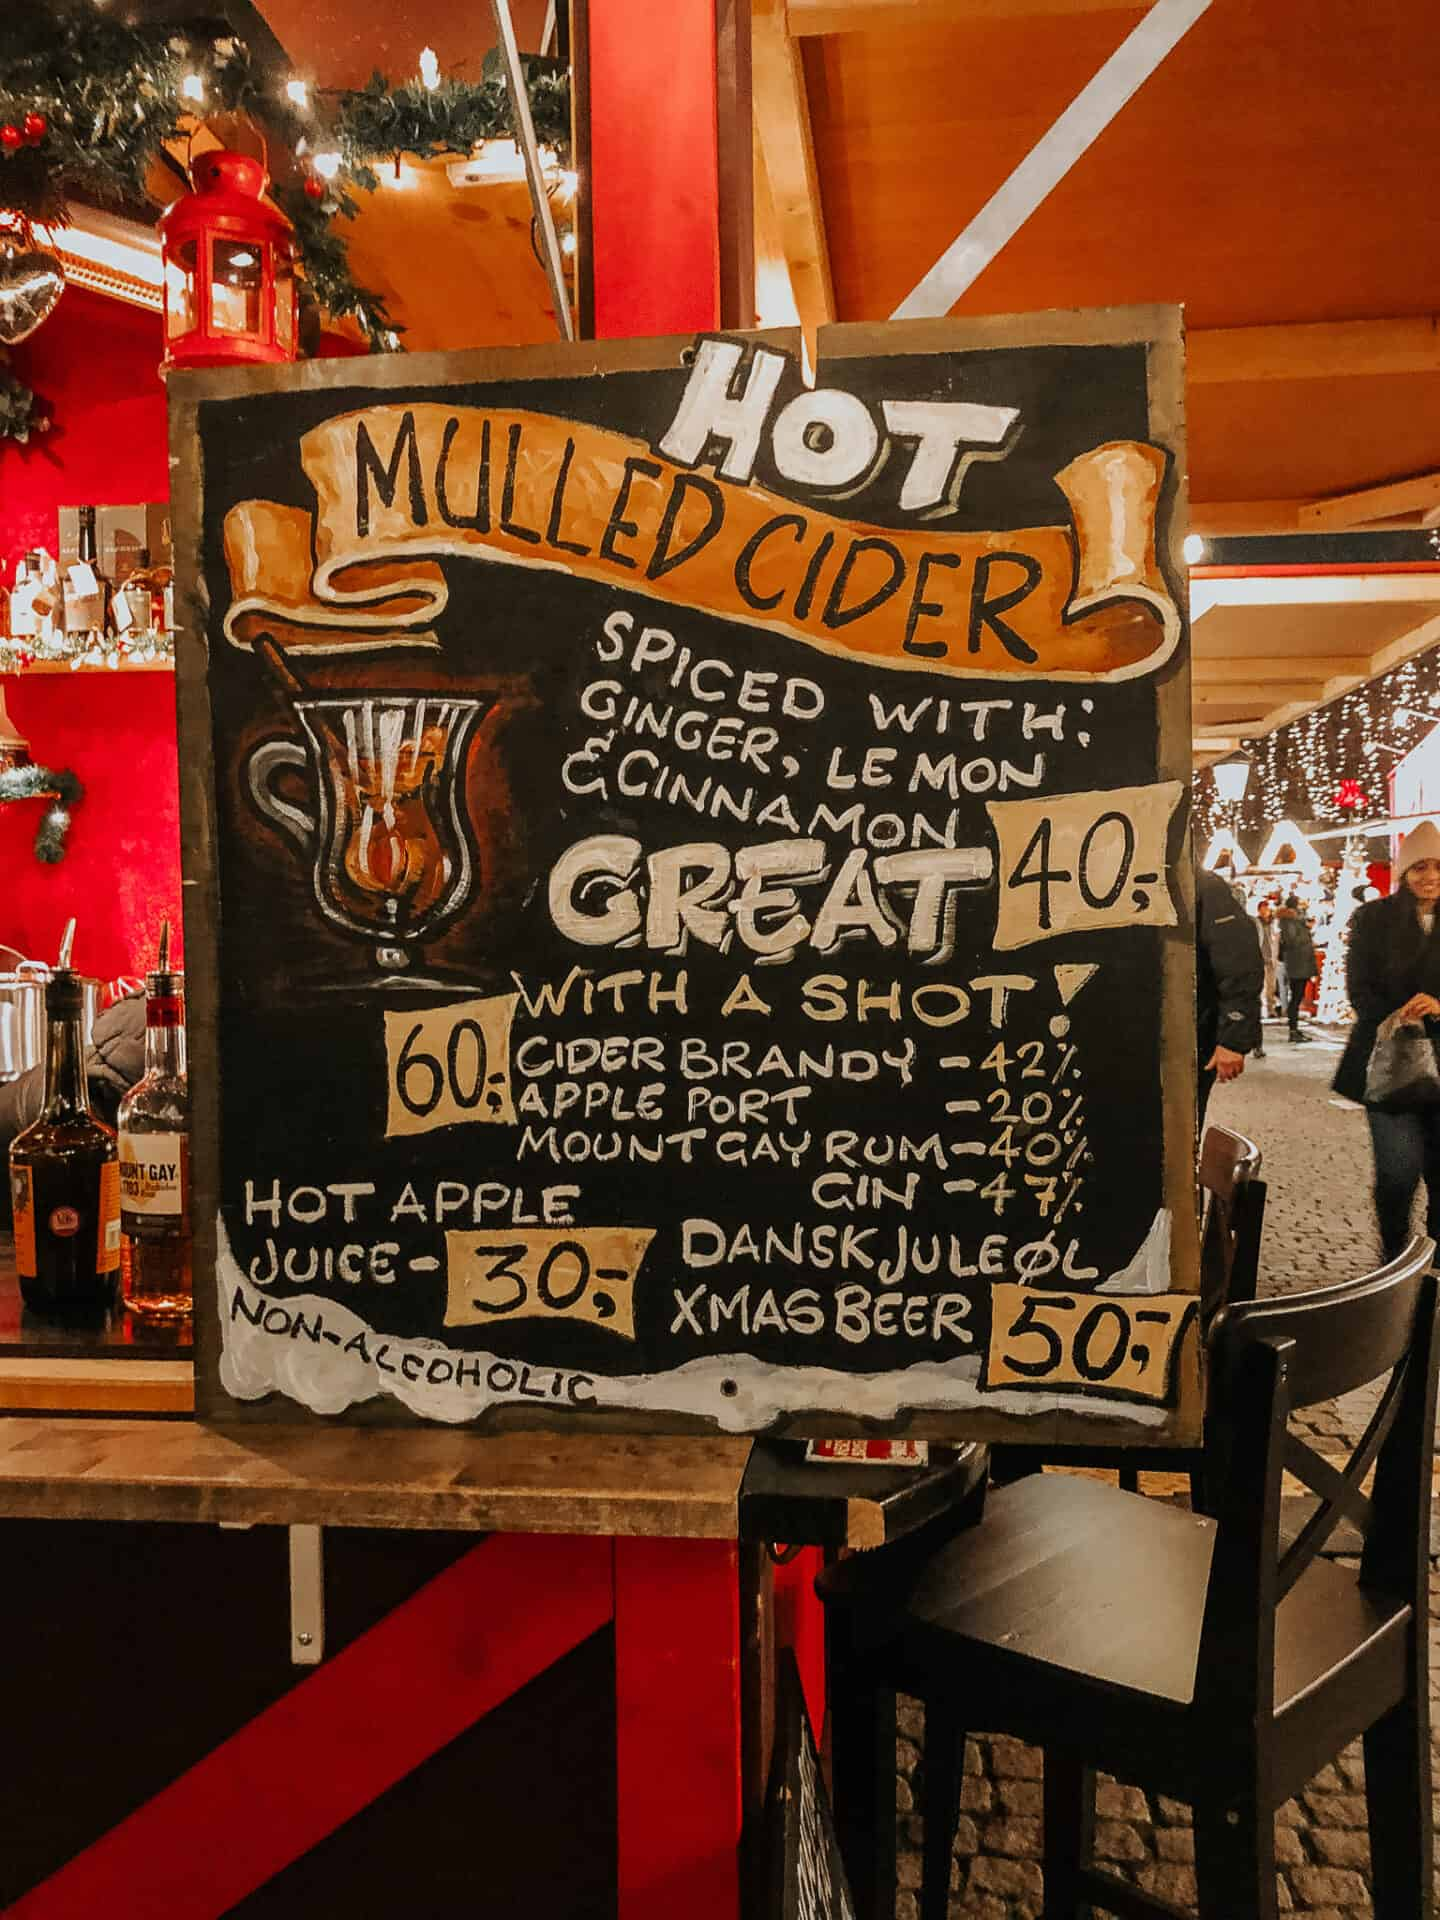 Hot Mulled Cider menu board